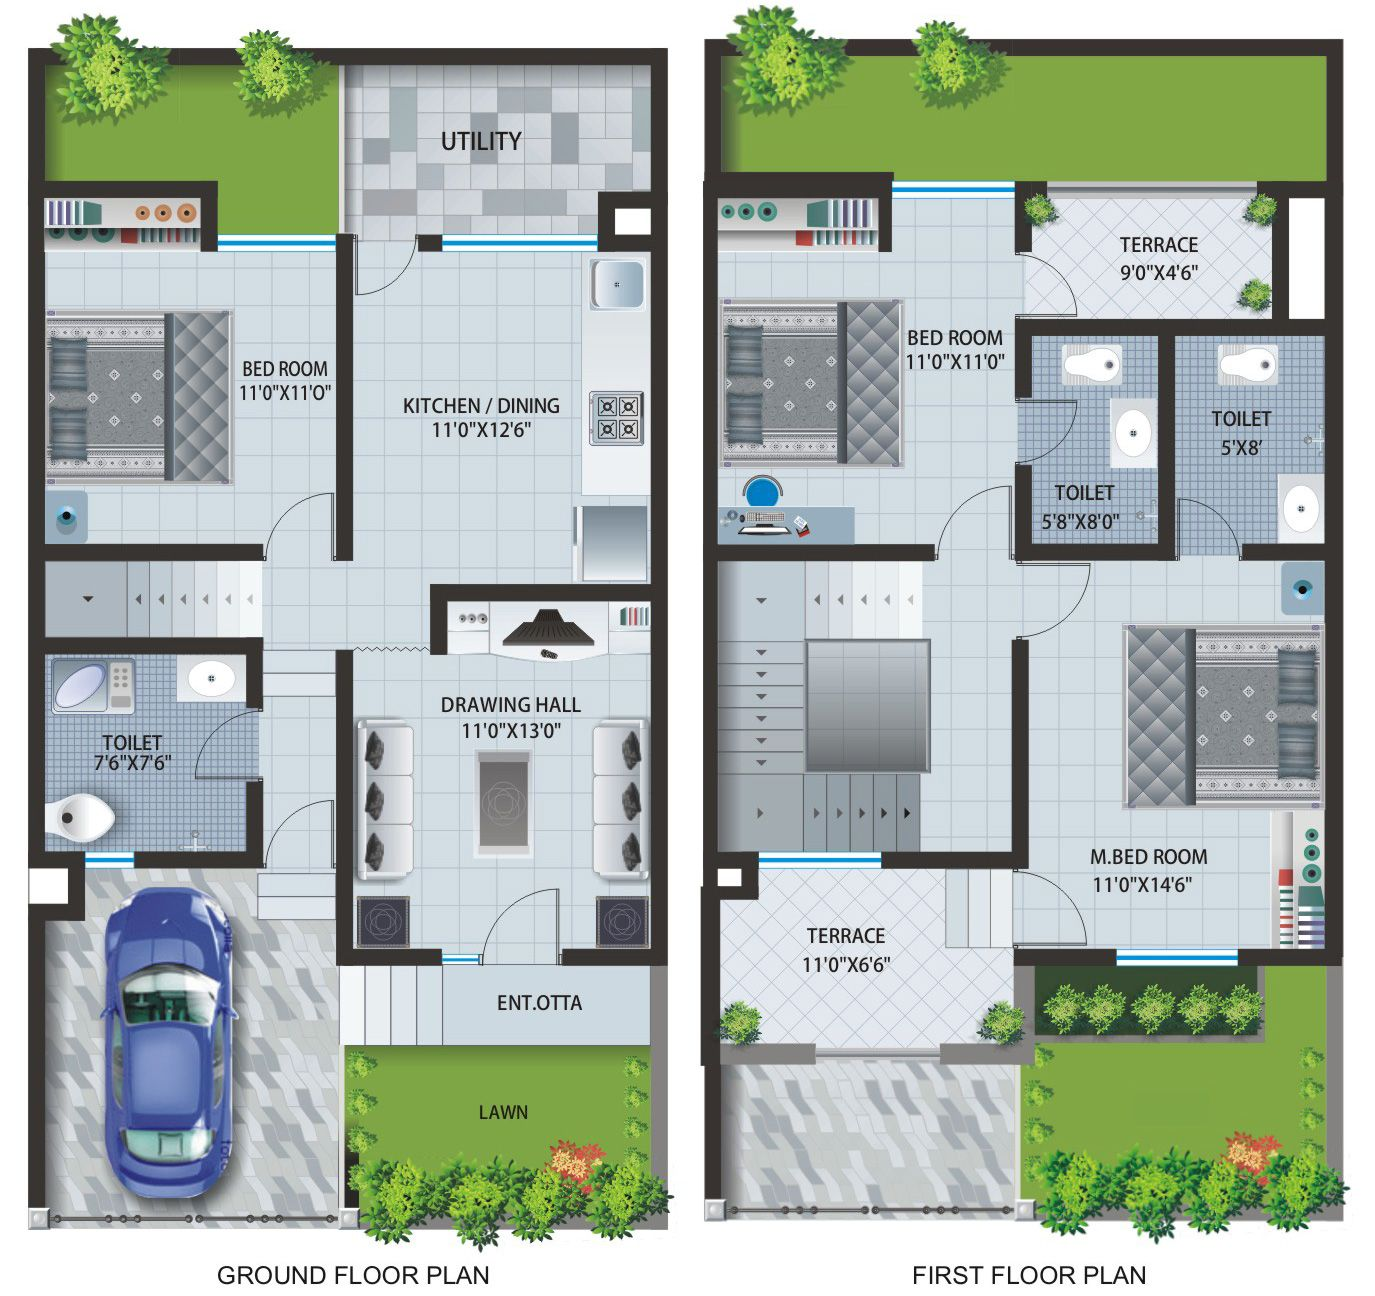 Floor plans of apartments row houses at caroline baner for Indian bungalow designs and floor plans